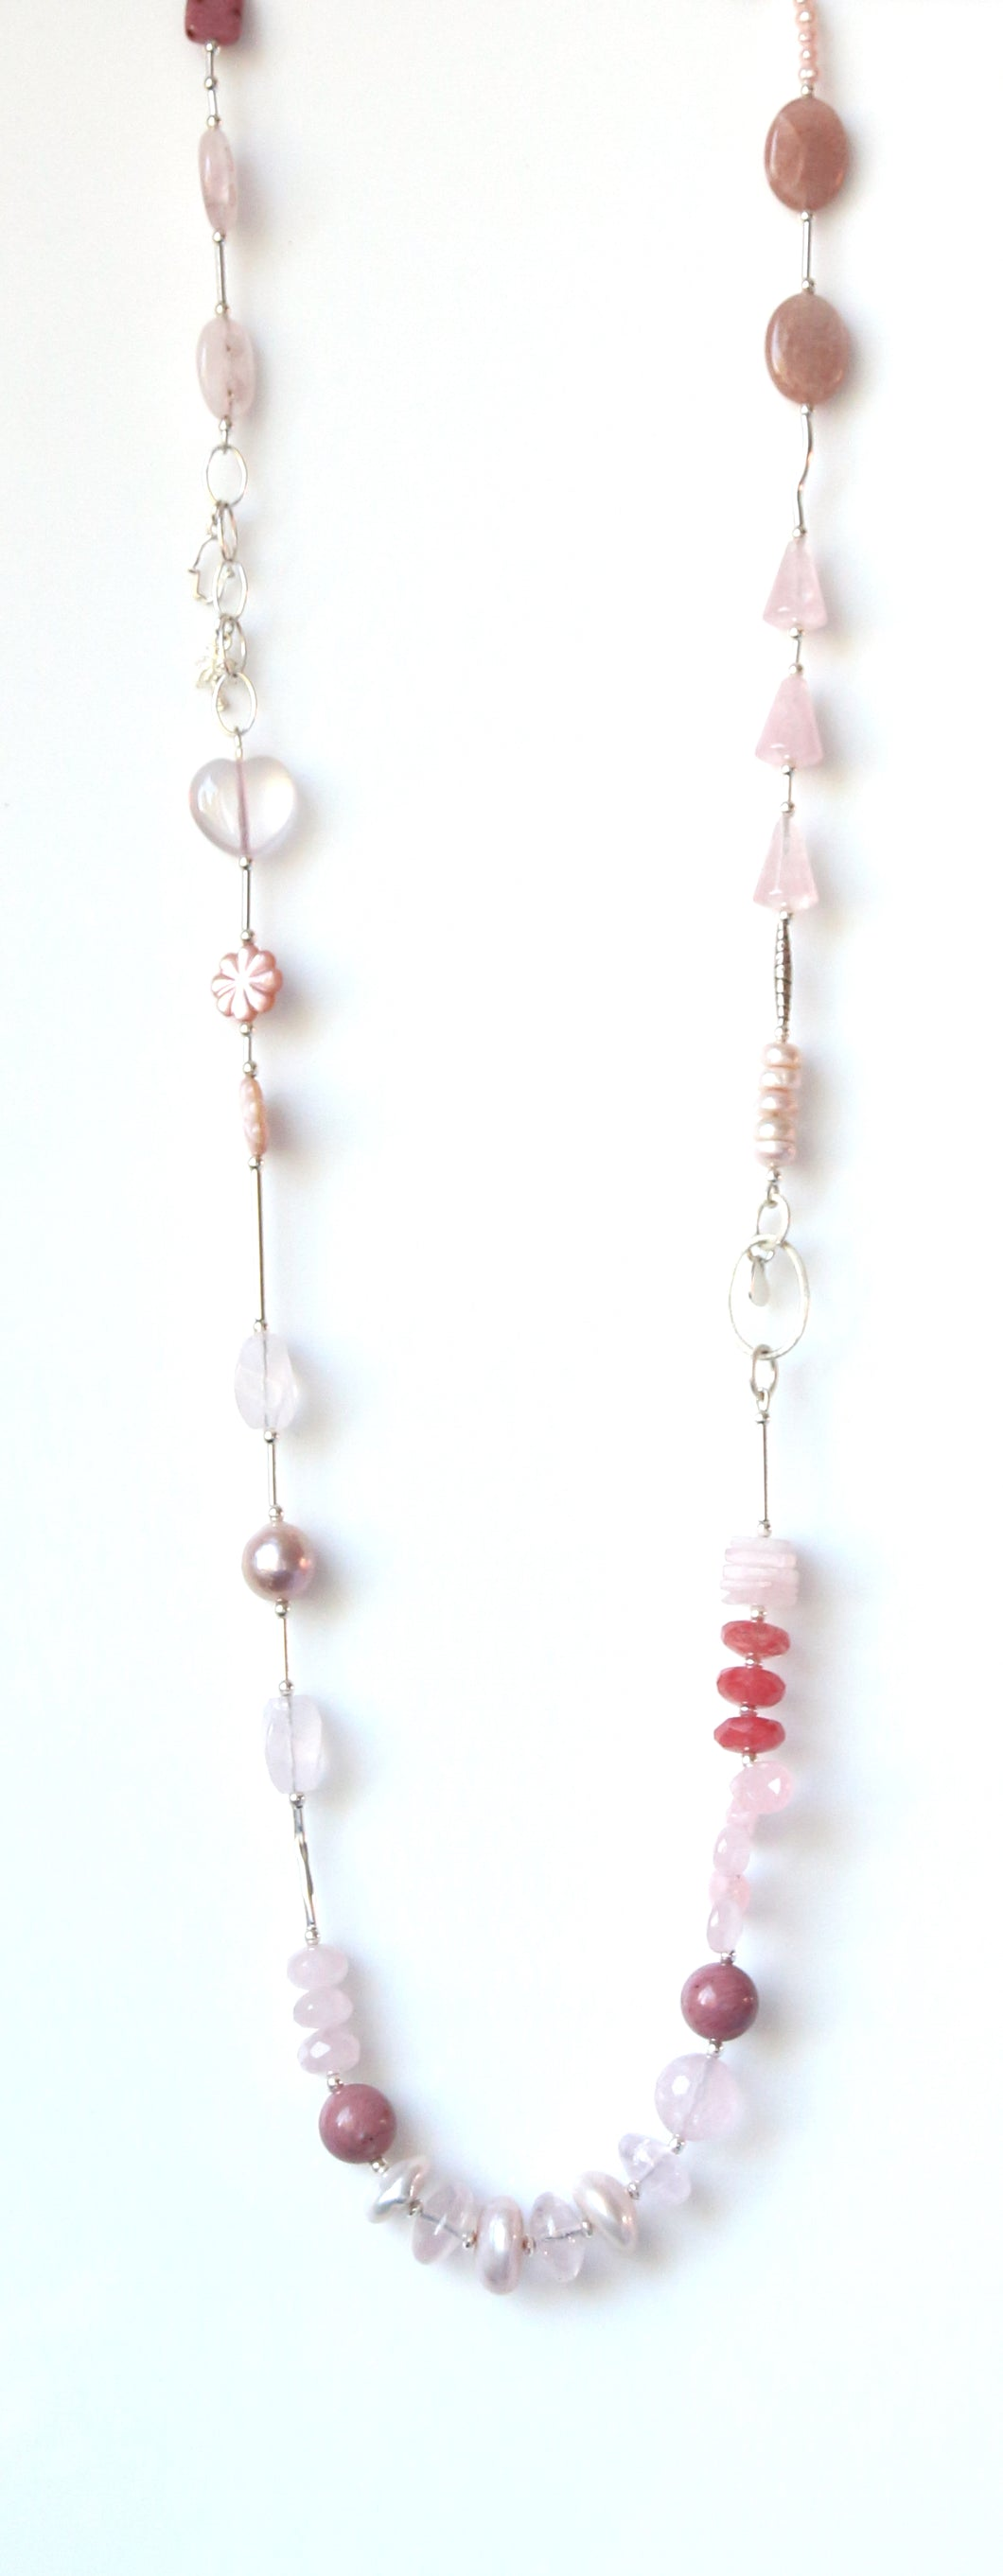 Australian Handmade Pink Necklace with Rose Quartz Moonstone Rhodonite Pearls and Sterling Silver